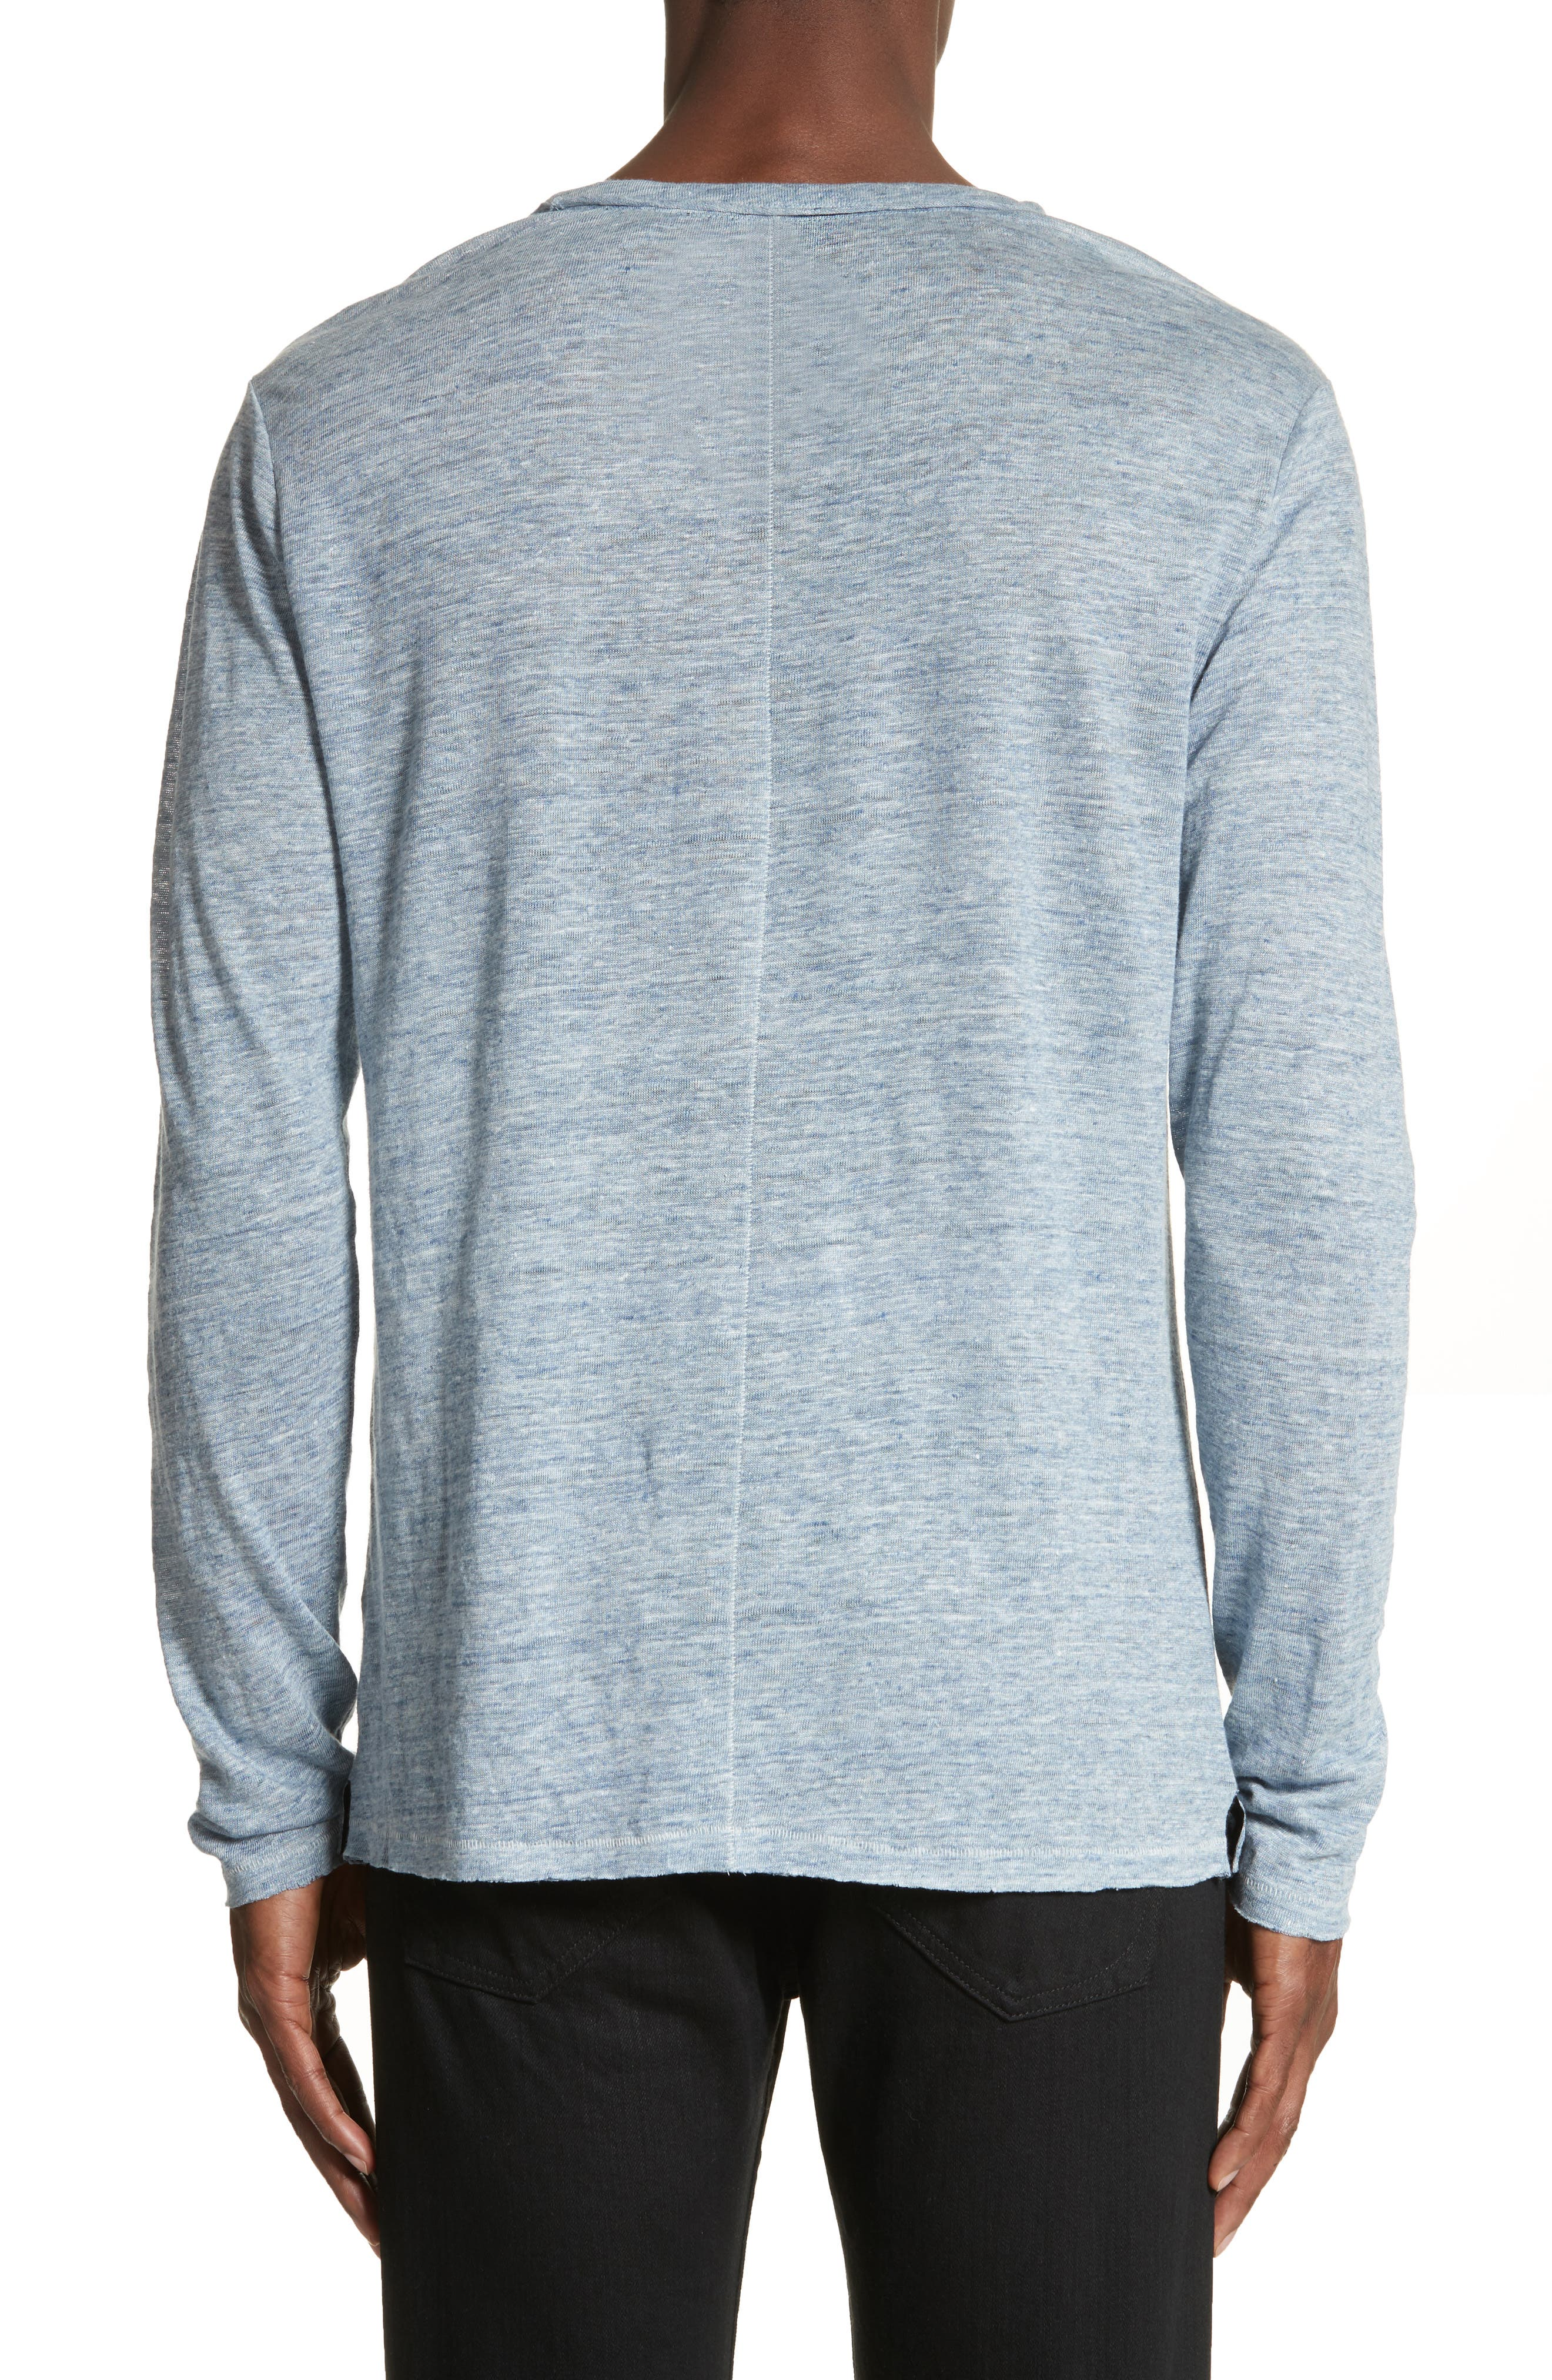 Owen Linen Long Sleeve T-Shirt,                             Alternate thumbnail 6, color,